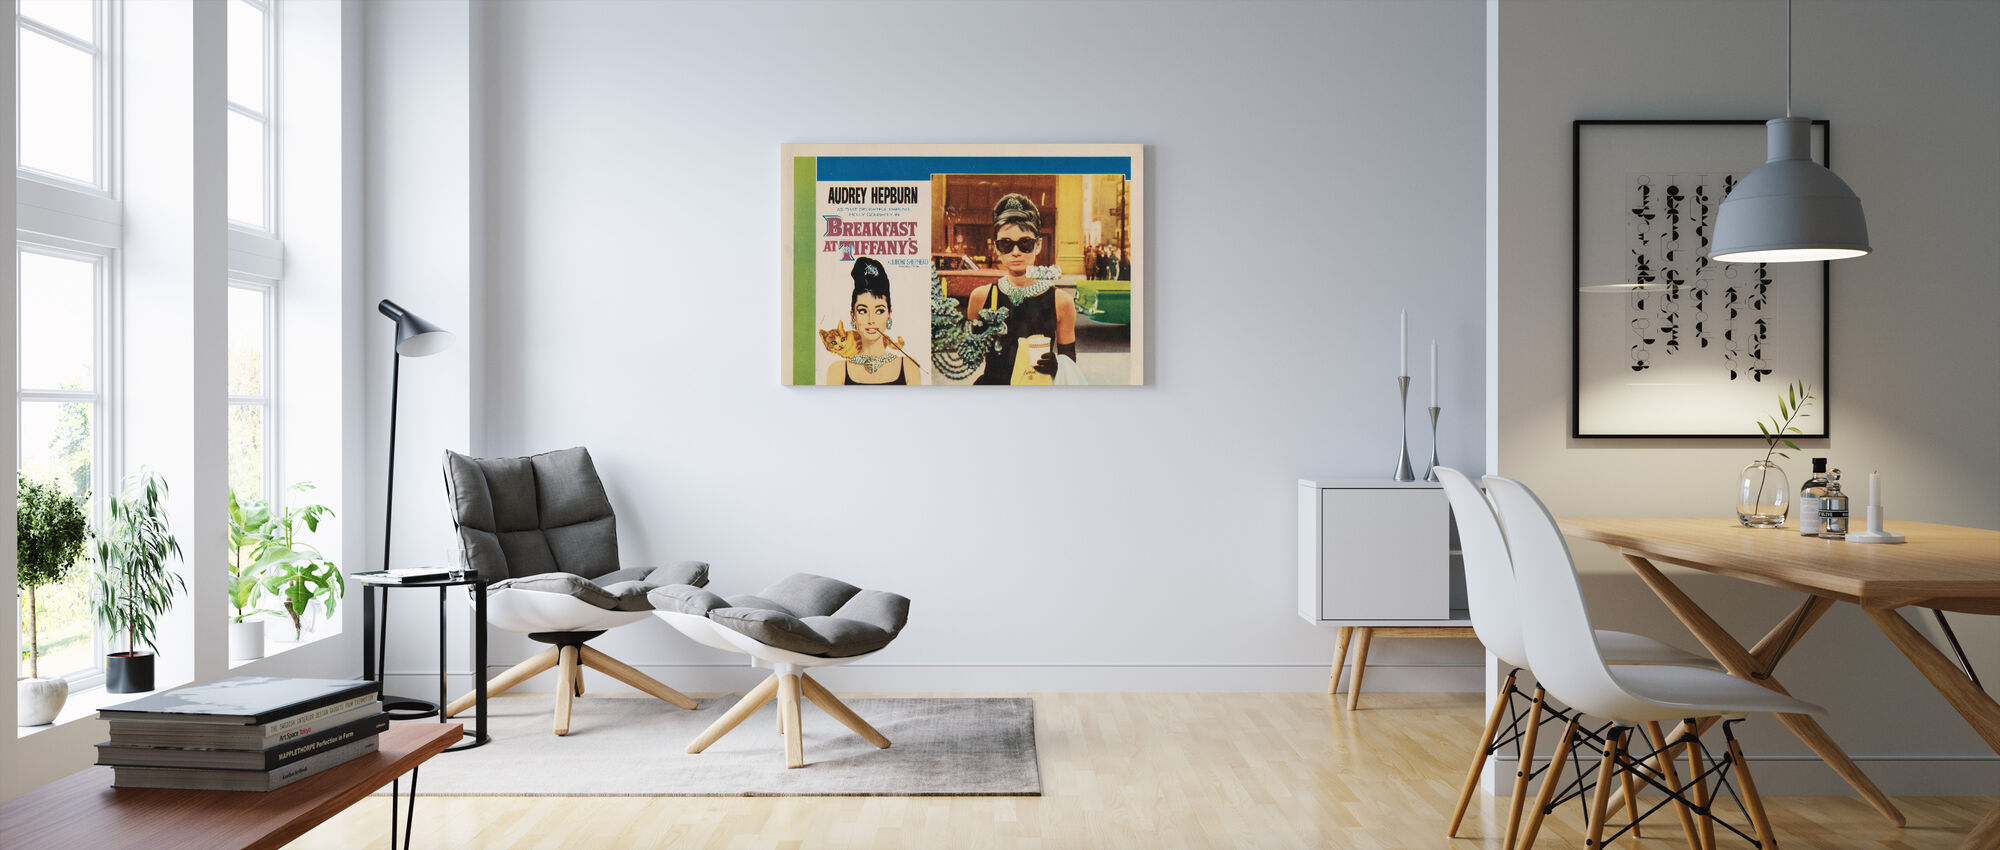 Movie Poster Breakfast at Tiffany's - Canvas print - Living Room